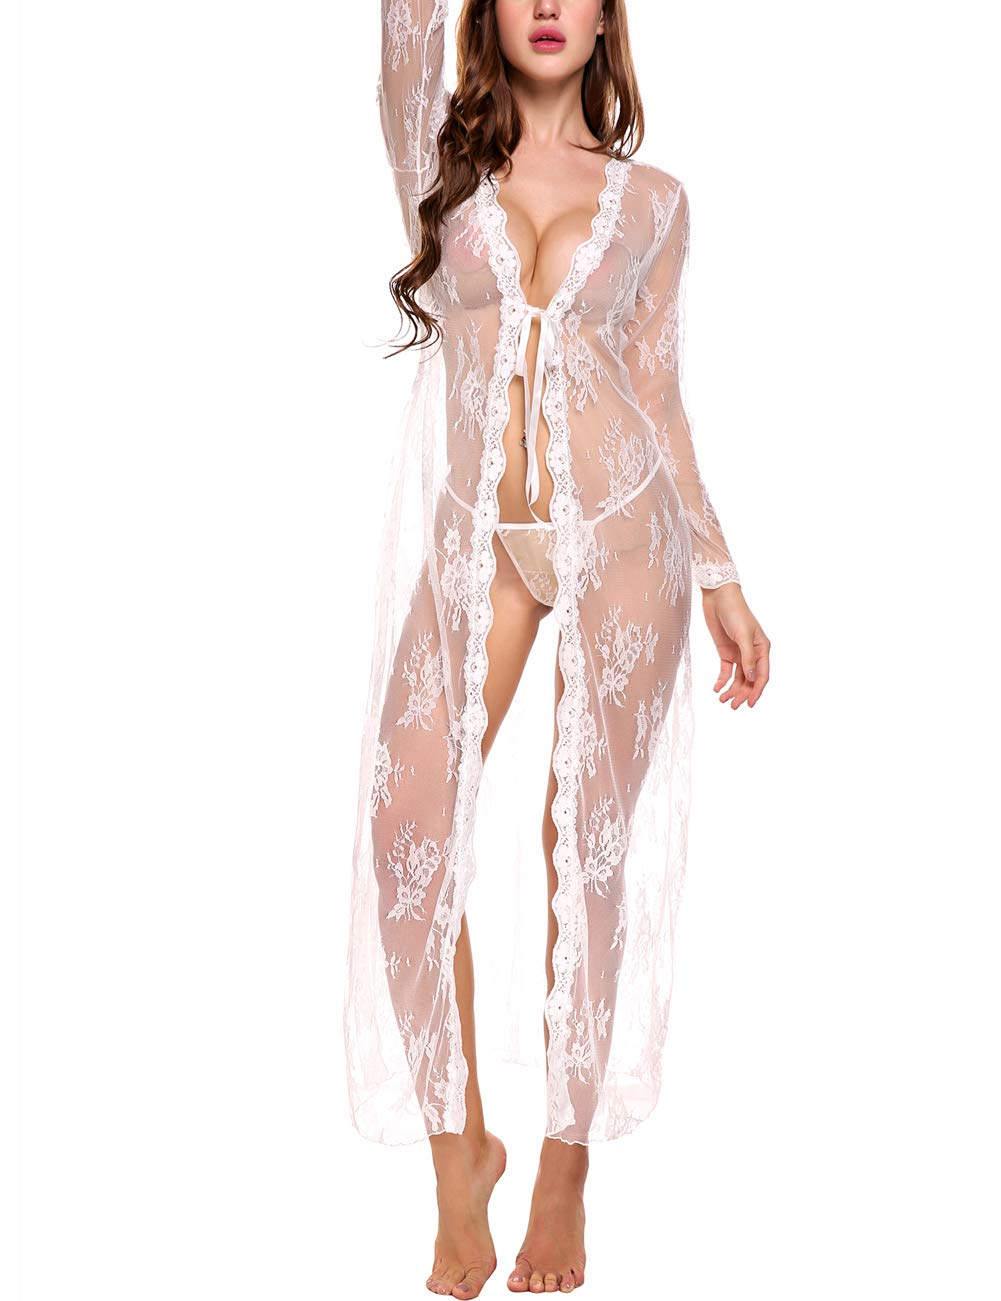 Sleepwear Dress Summer Sexy Bath Robe See Through Nightgown Ladies Skirt Lingerie Night Robe,2_white Summer Women Cardigan,XX-Large by Lomon